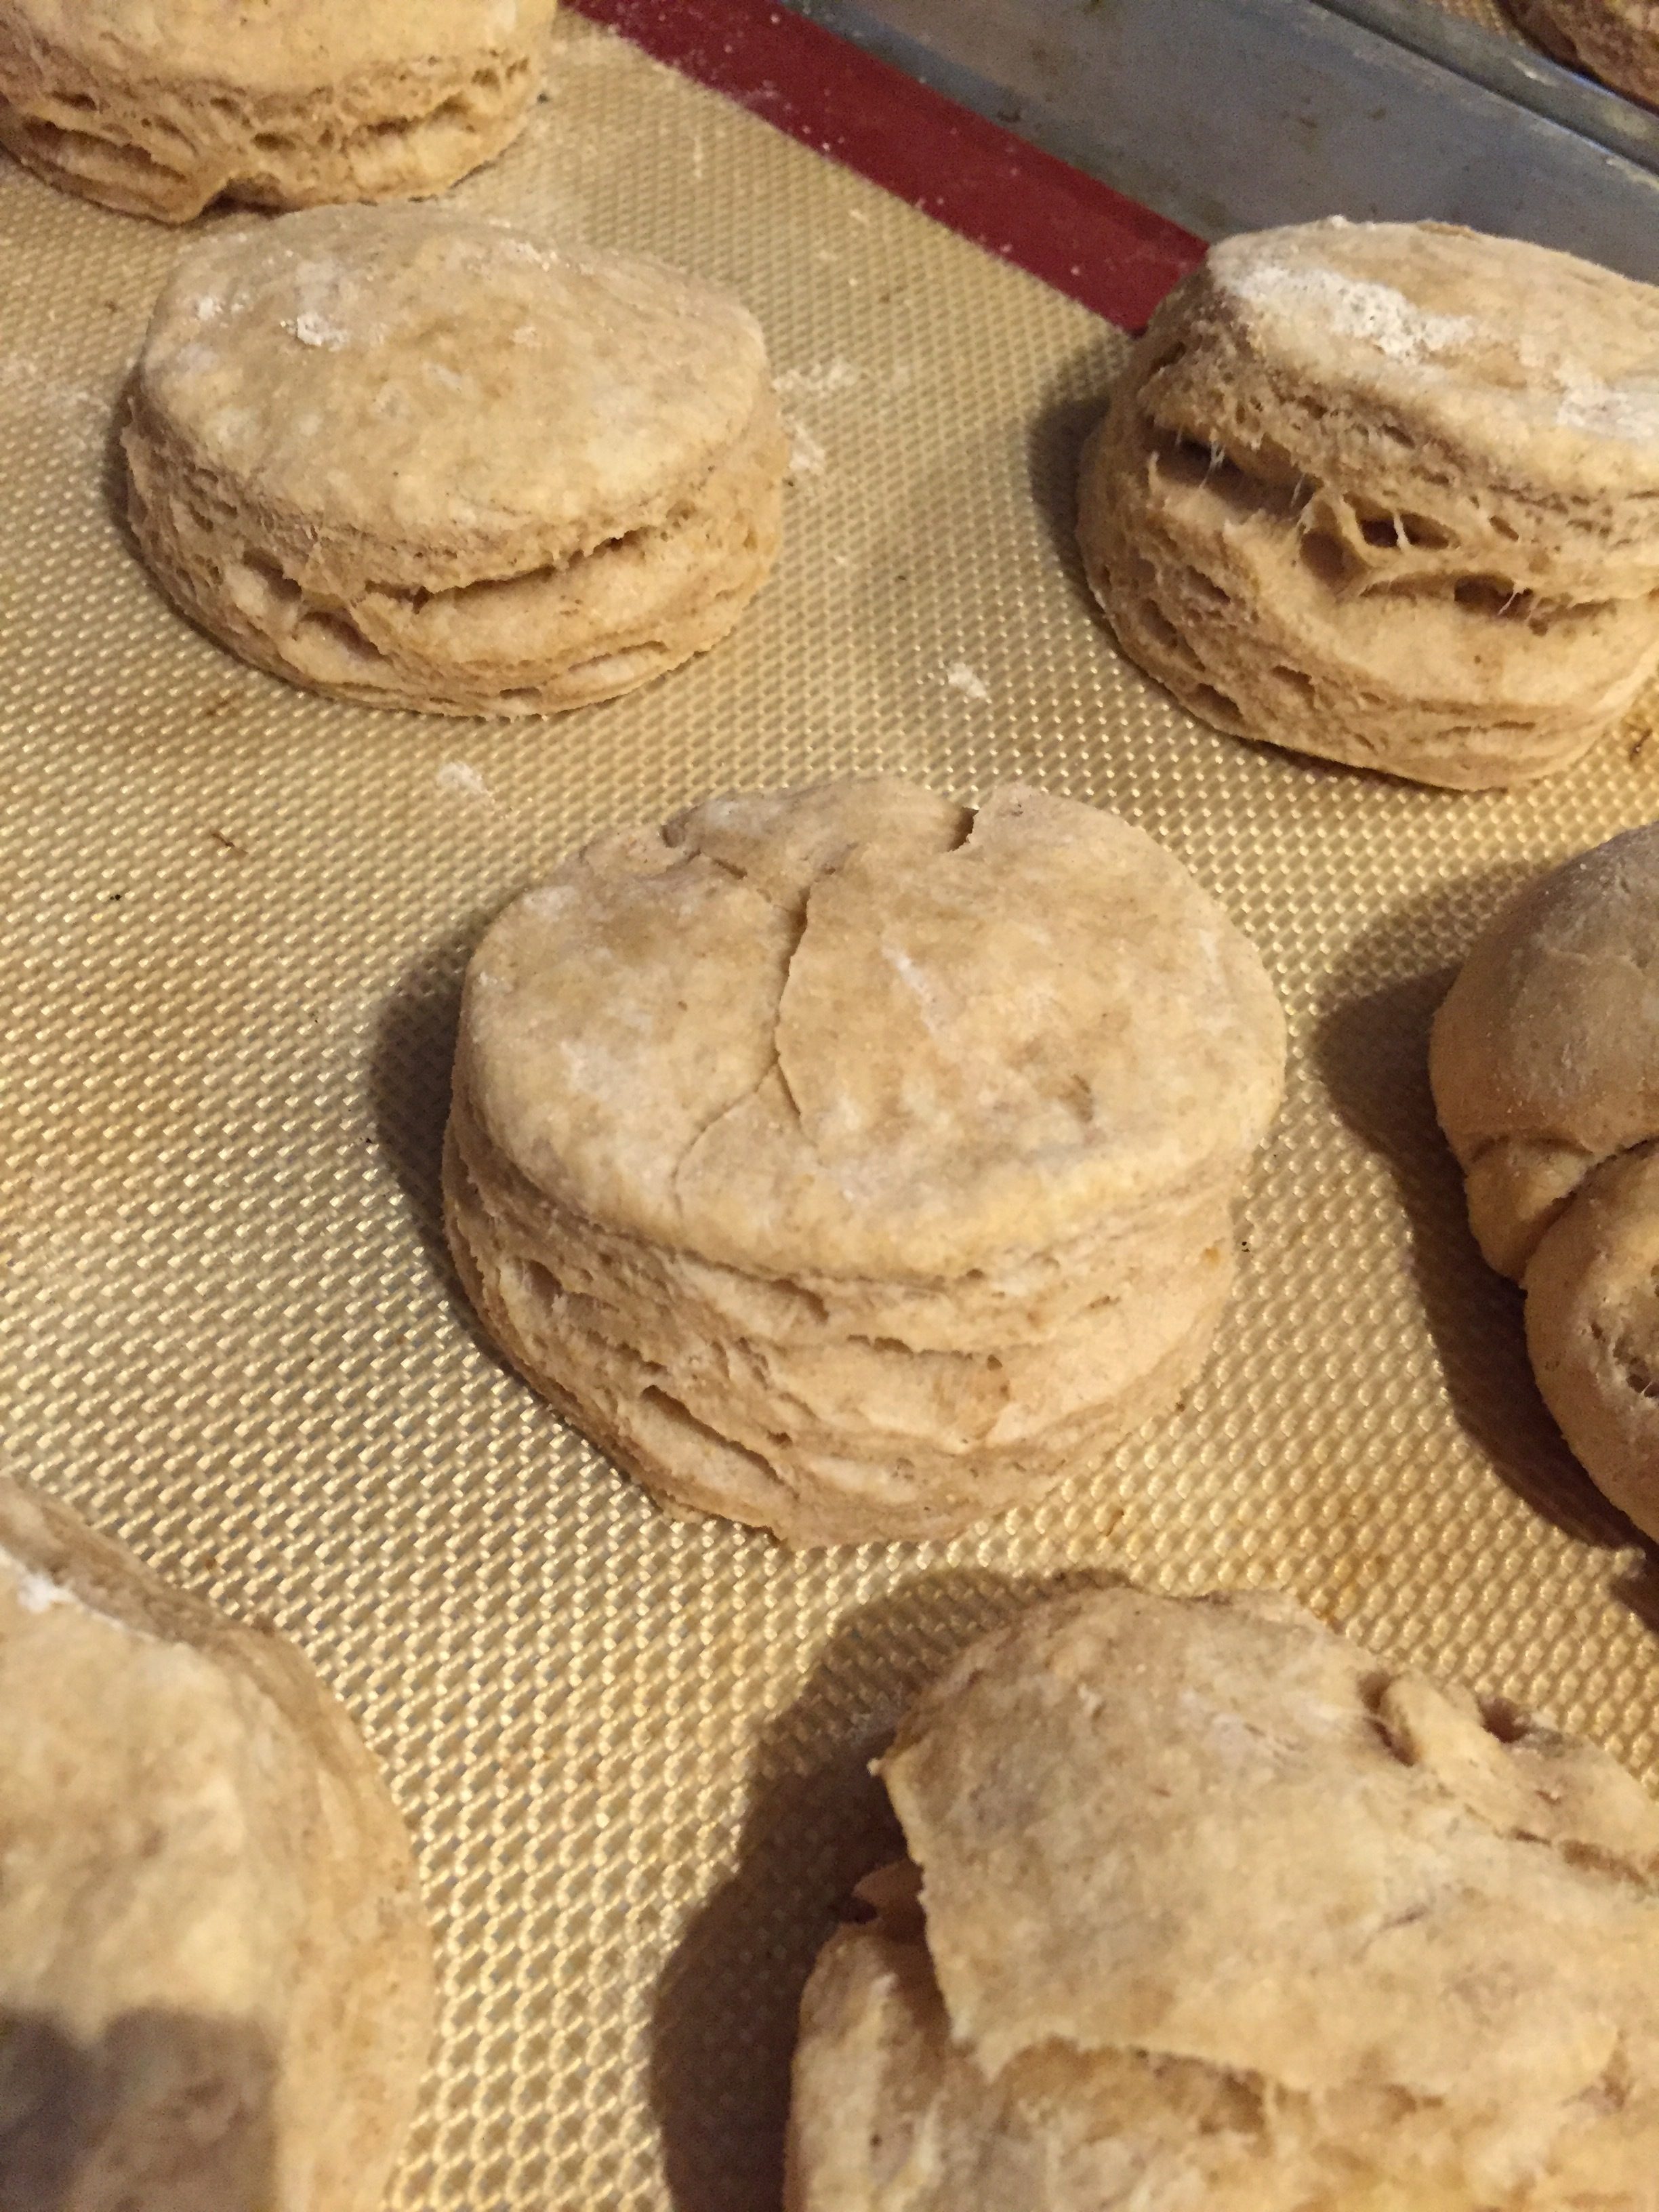 This is my favorite whole wheat biscuit recipe that my husband makes, and they freeze really well!